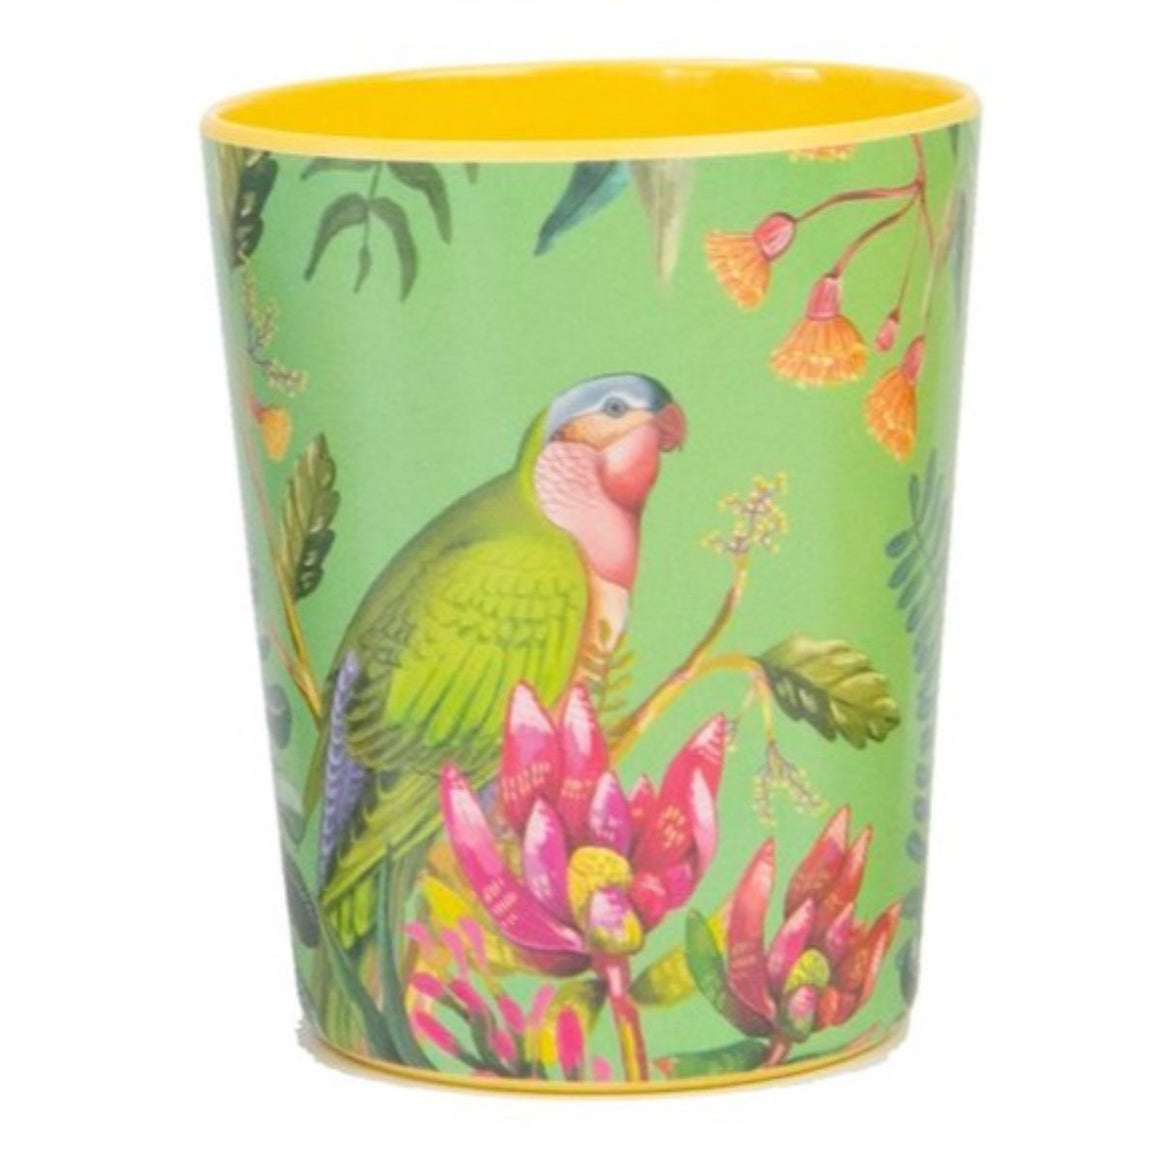 Enamel cup featuring an australian floral pattern with a princess parrot